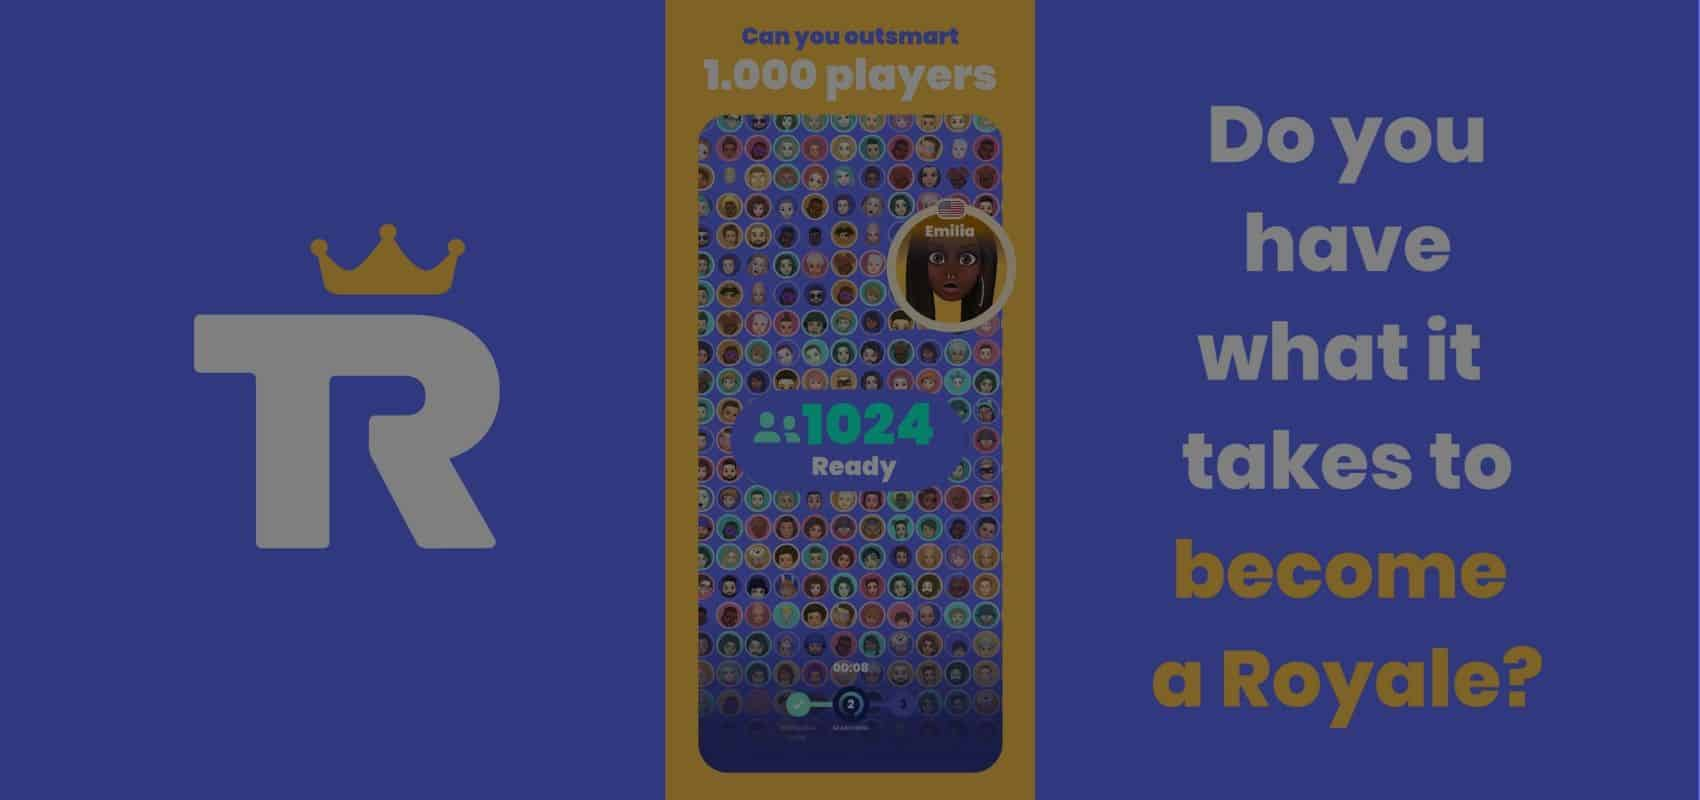 Outsmart 1000 other players & become quiz royalty as Trivia Royale launches on the App Store